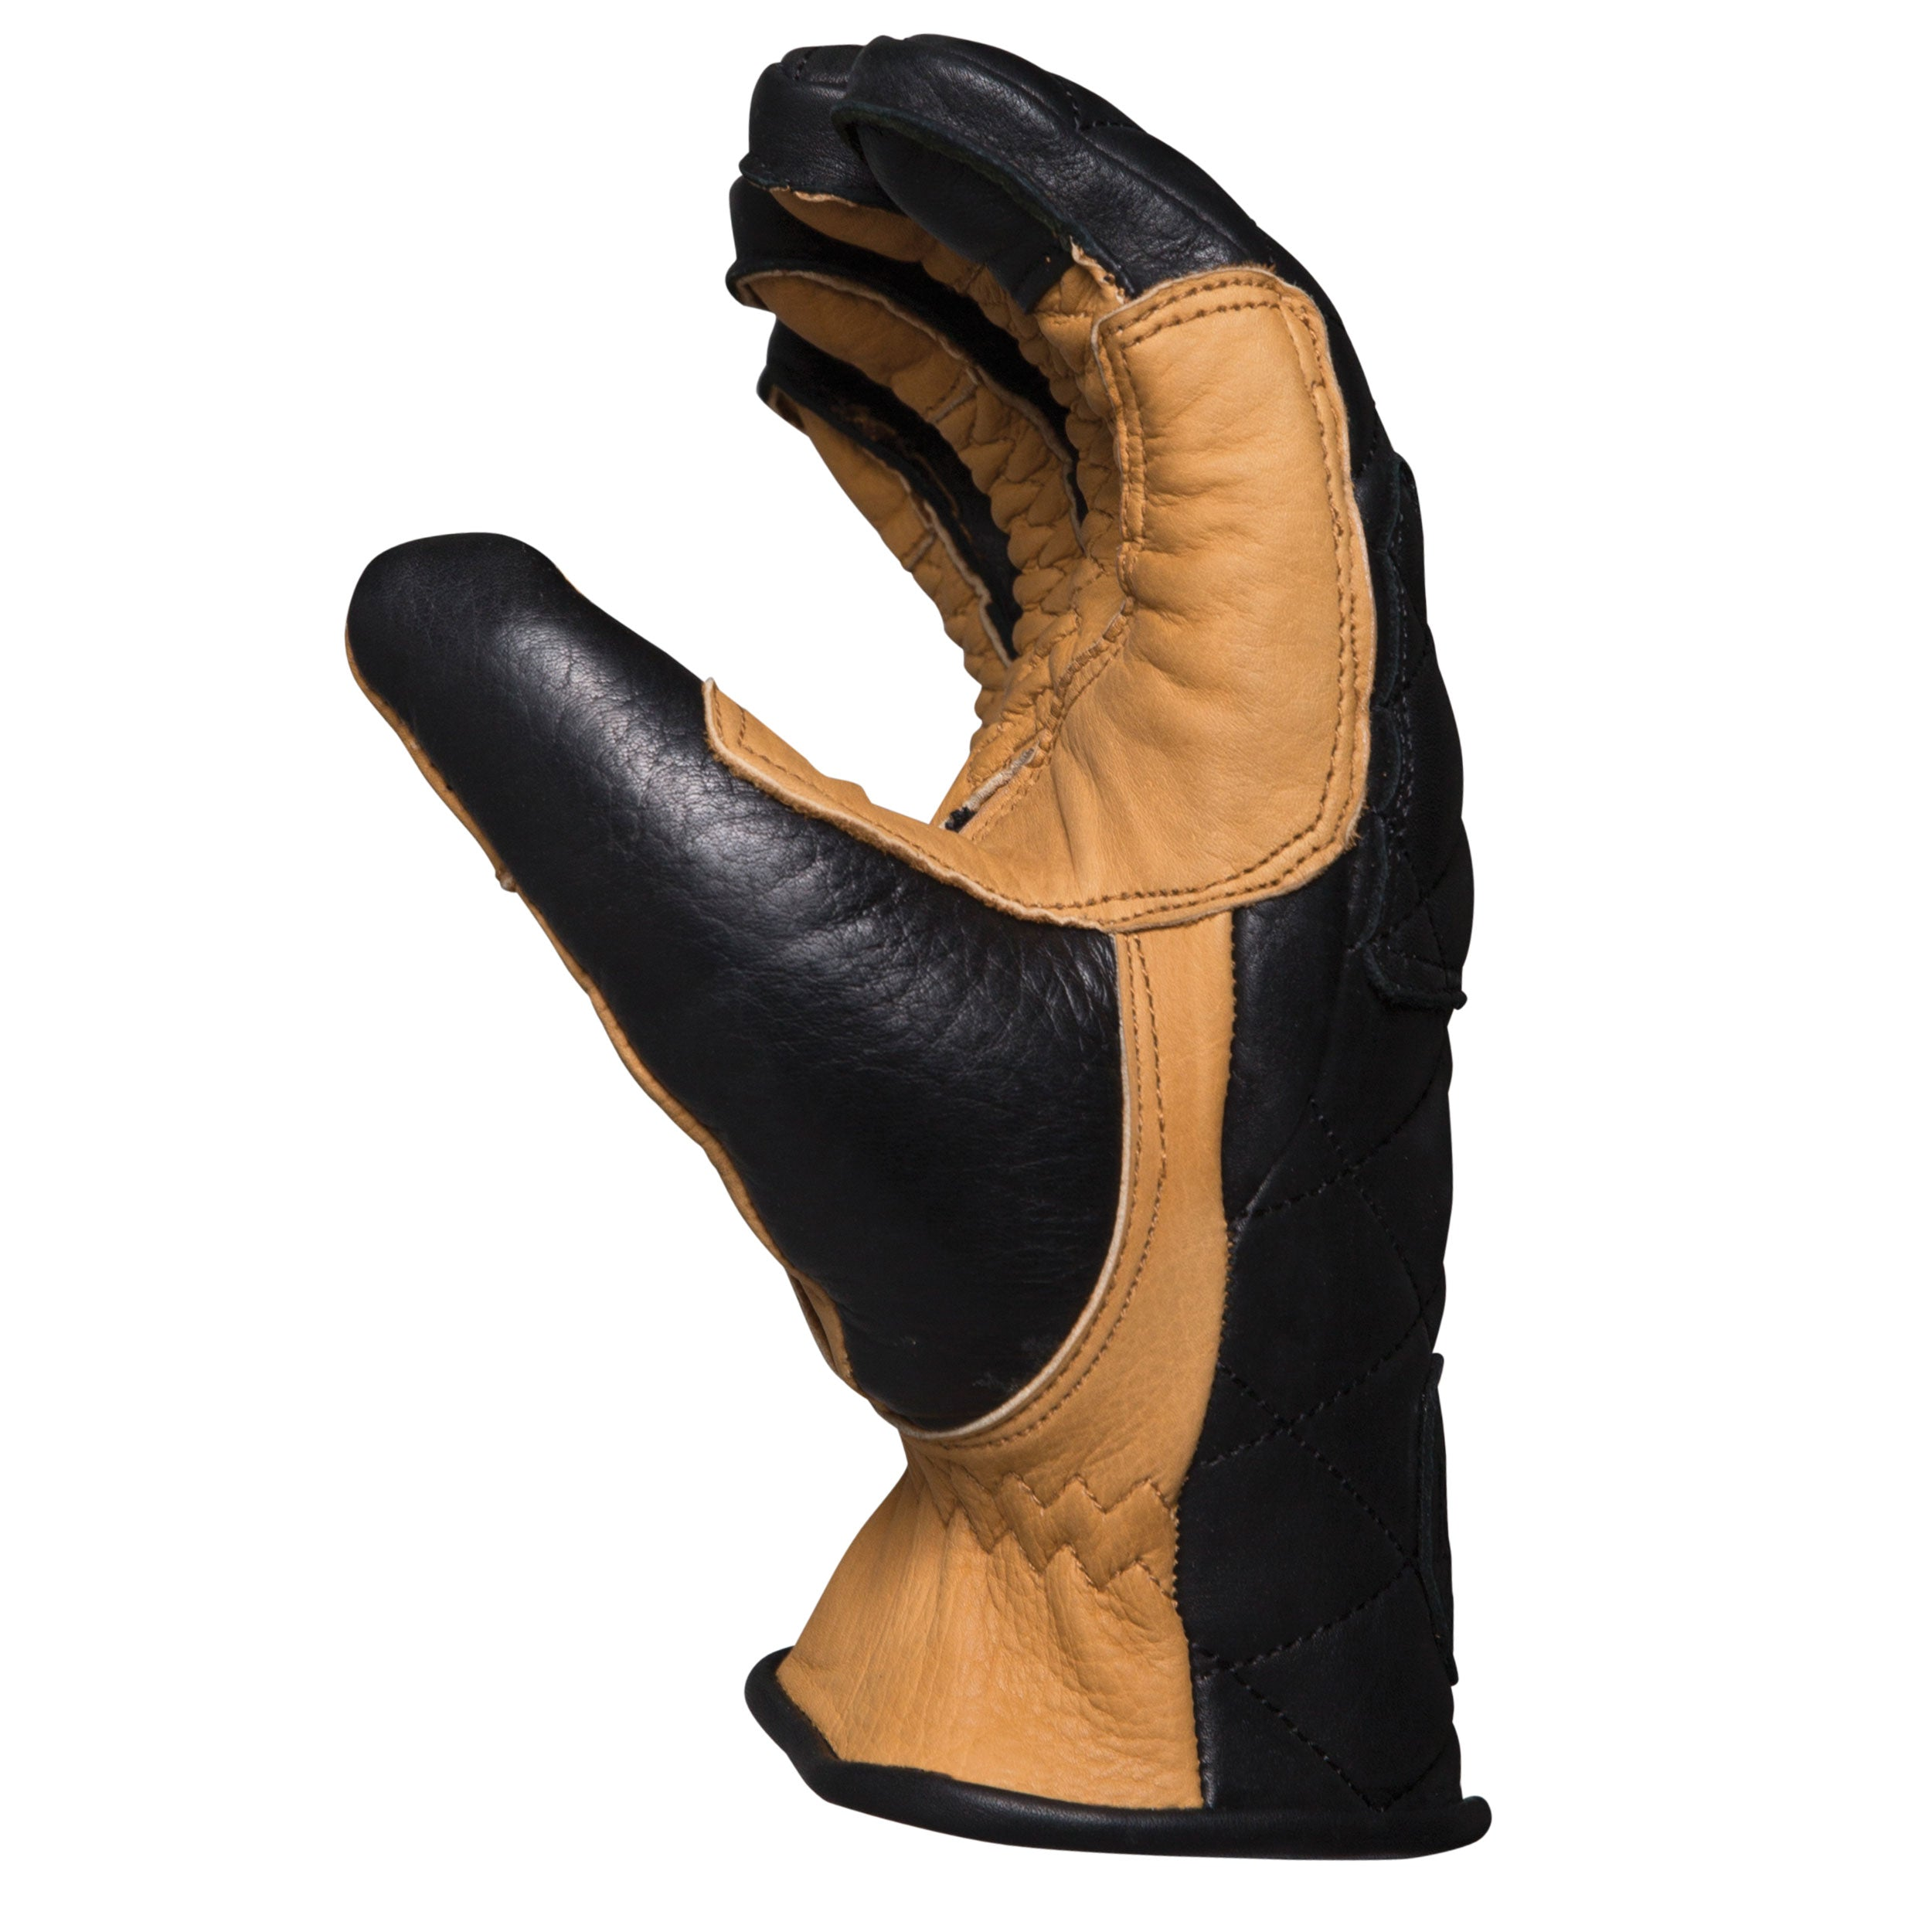 Duster black and tan heritage leather motorcycle glove made with the spirit of iconic desert motorcross racing, this is the side of hand view, and could be worn on motox, chopper riding, cafe racer, tracker, brat style, or adventure bike